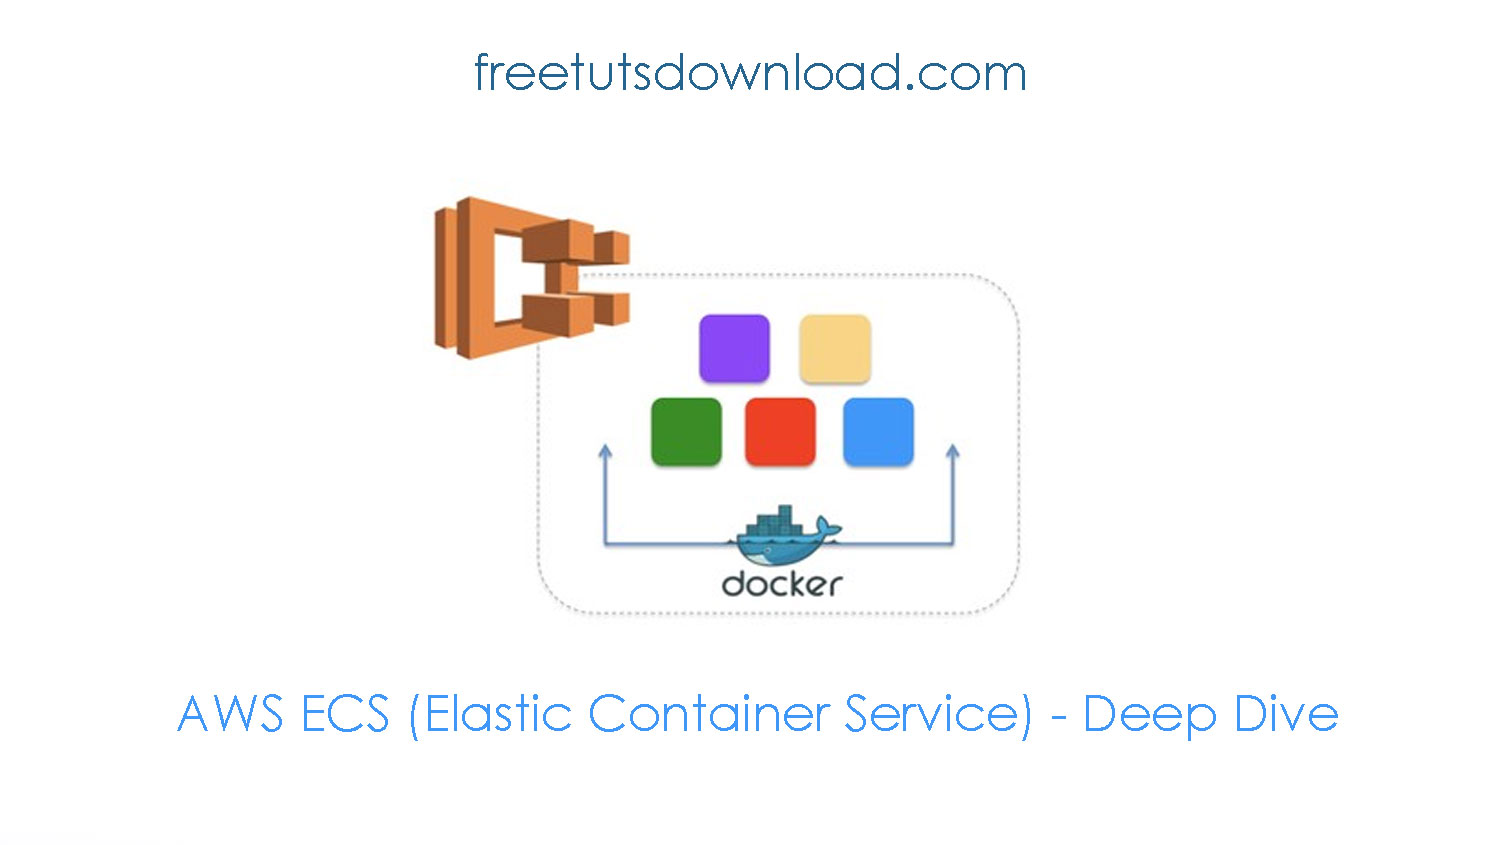 AWS ECS (Elastic Container Service) - Deep Dive free download